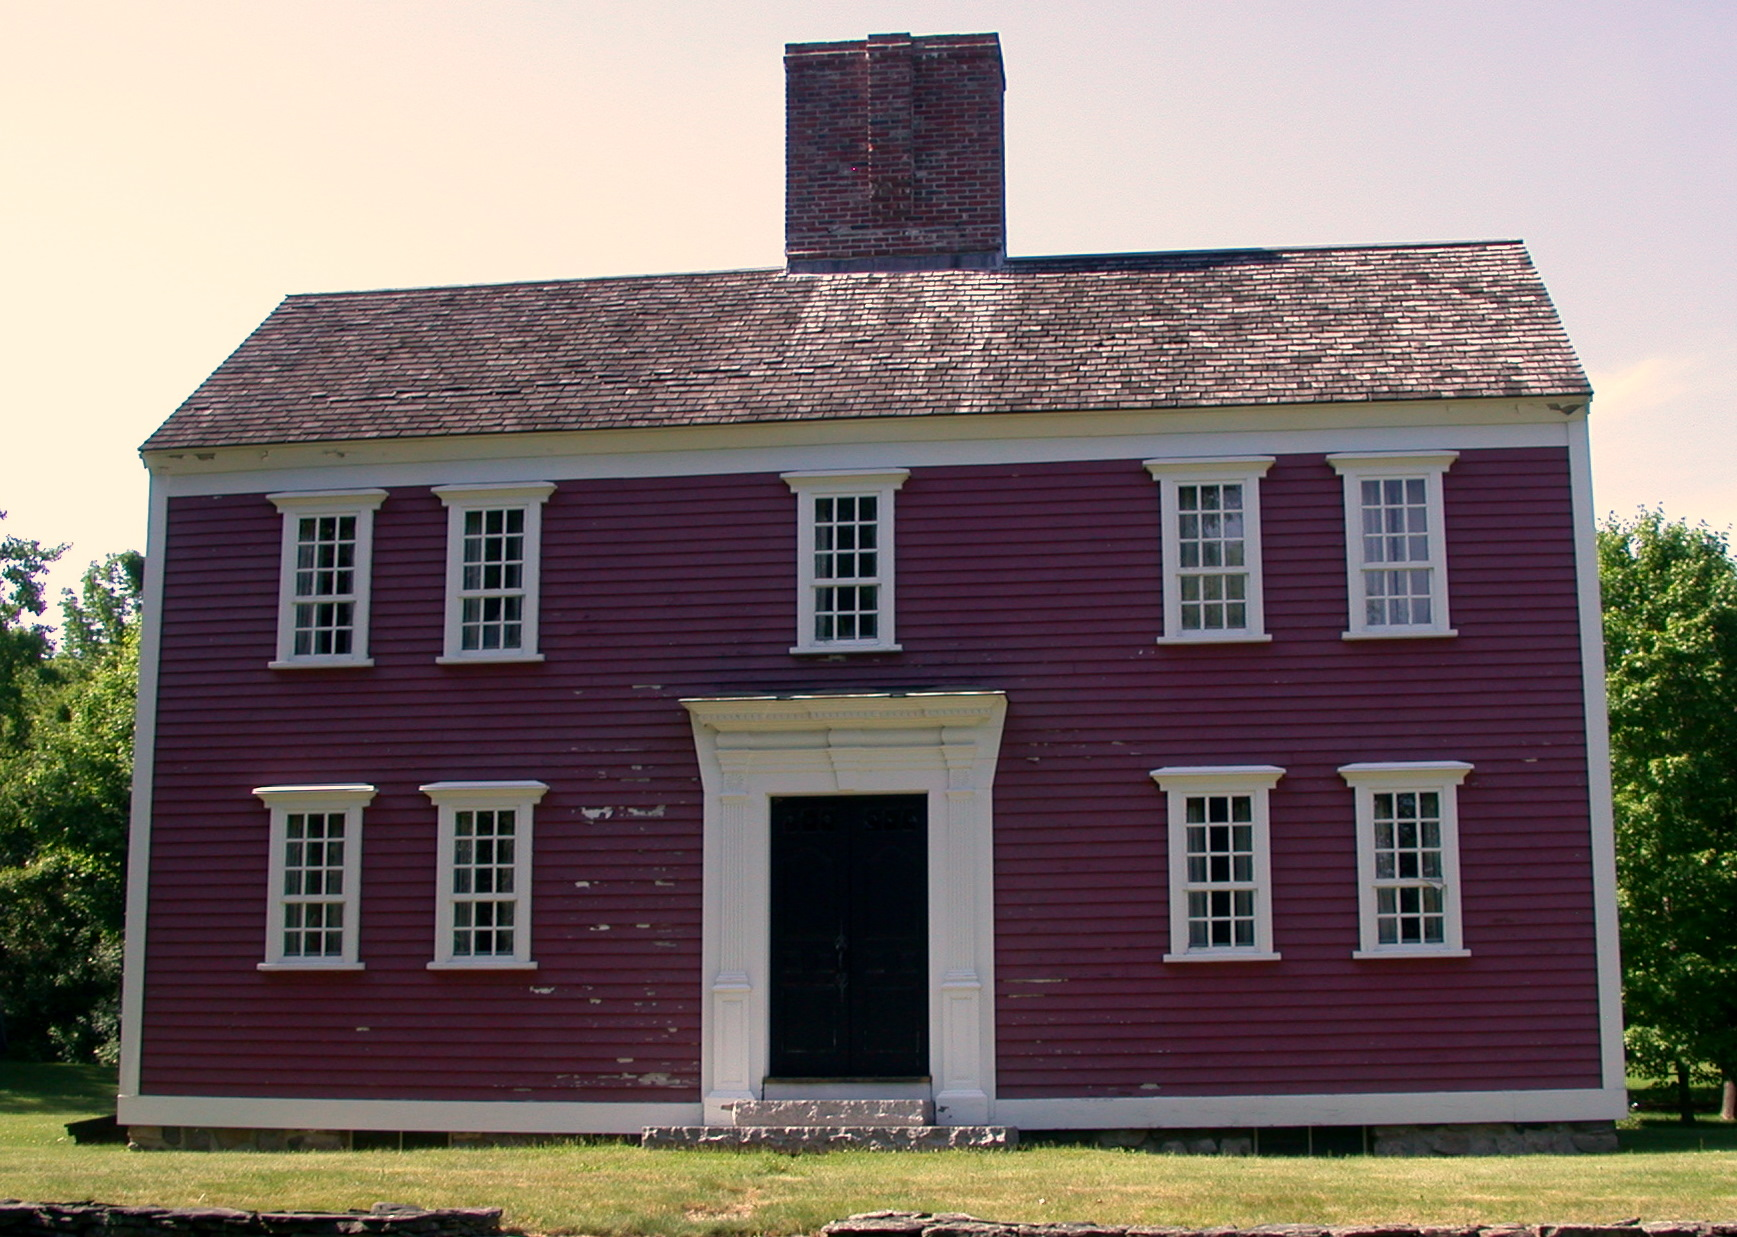 The Deacon Mathias Rice House